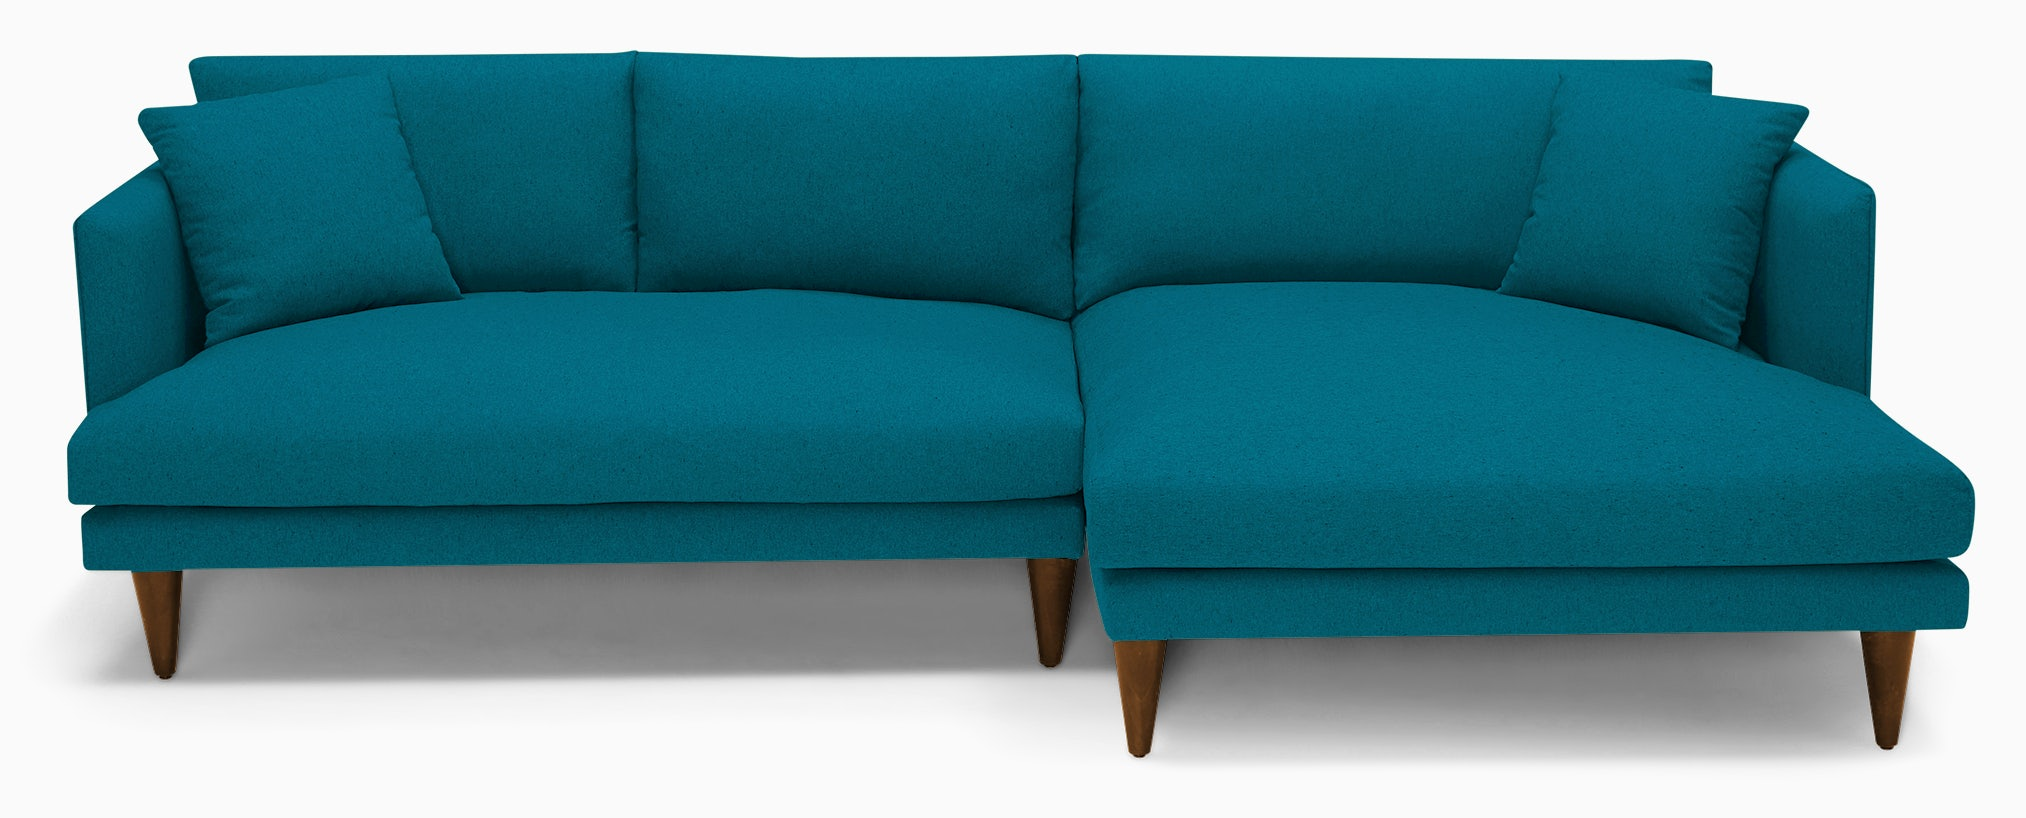 lewis sectional key largo zenith teal